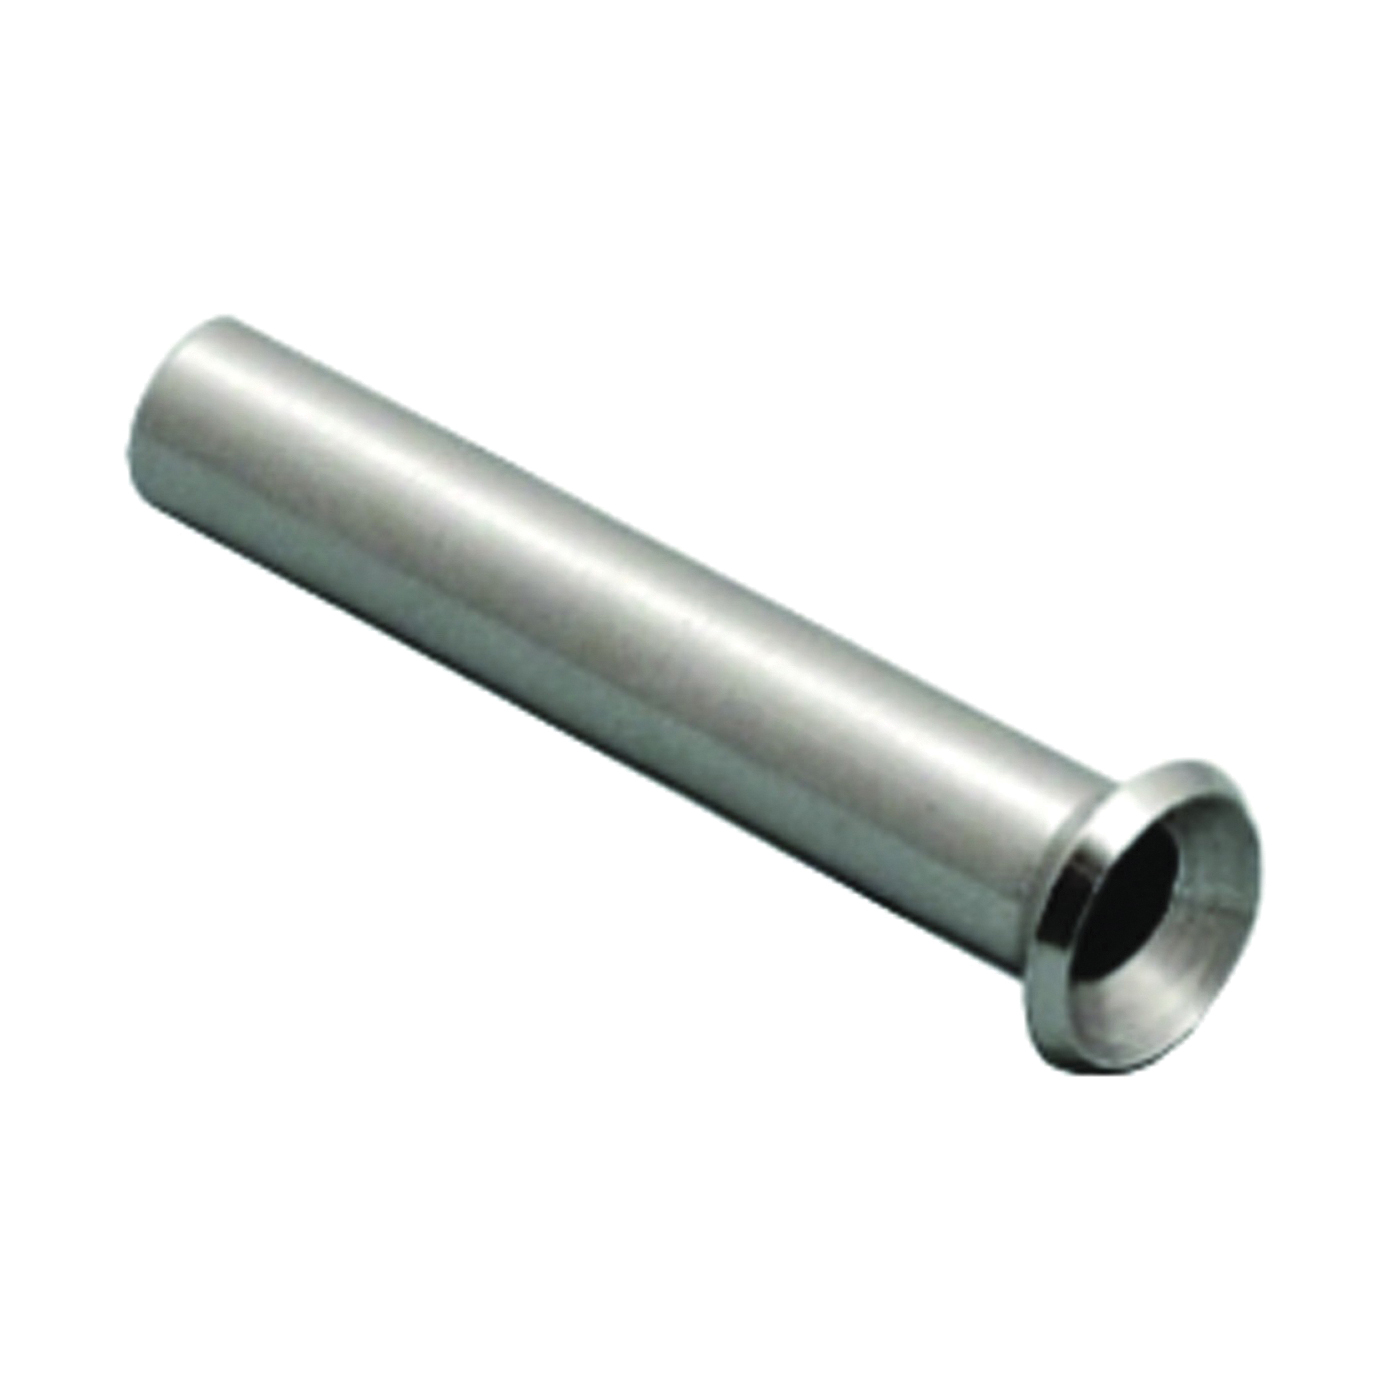 Picture of Ram Tail RT PS-10 Post Sleeve Rail, Stainless Steel, For: Mid-Posts Where Cable Passes Through to Prevent Chaffing